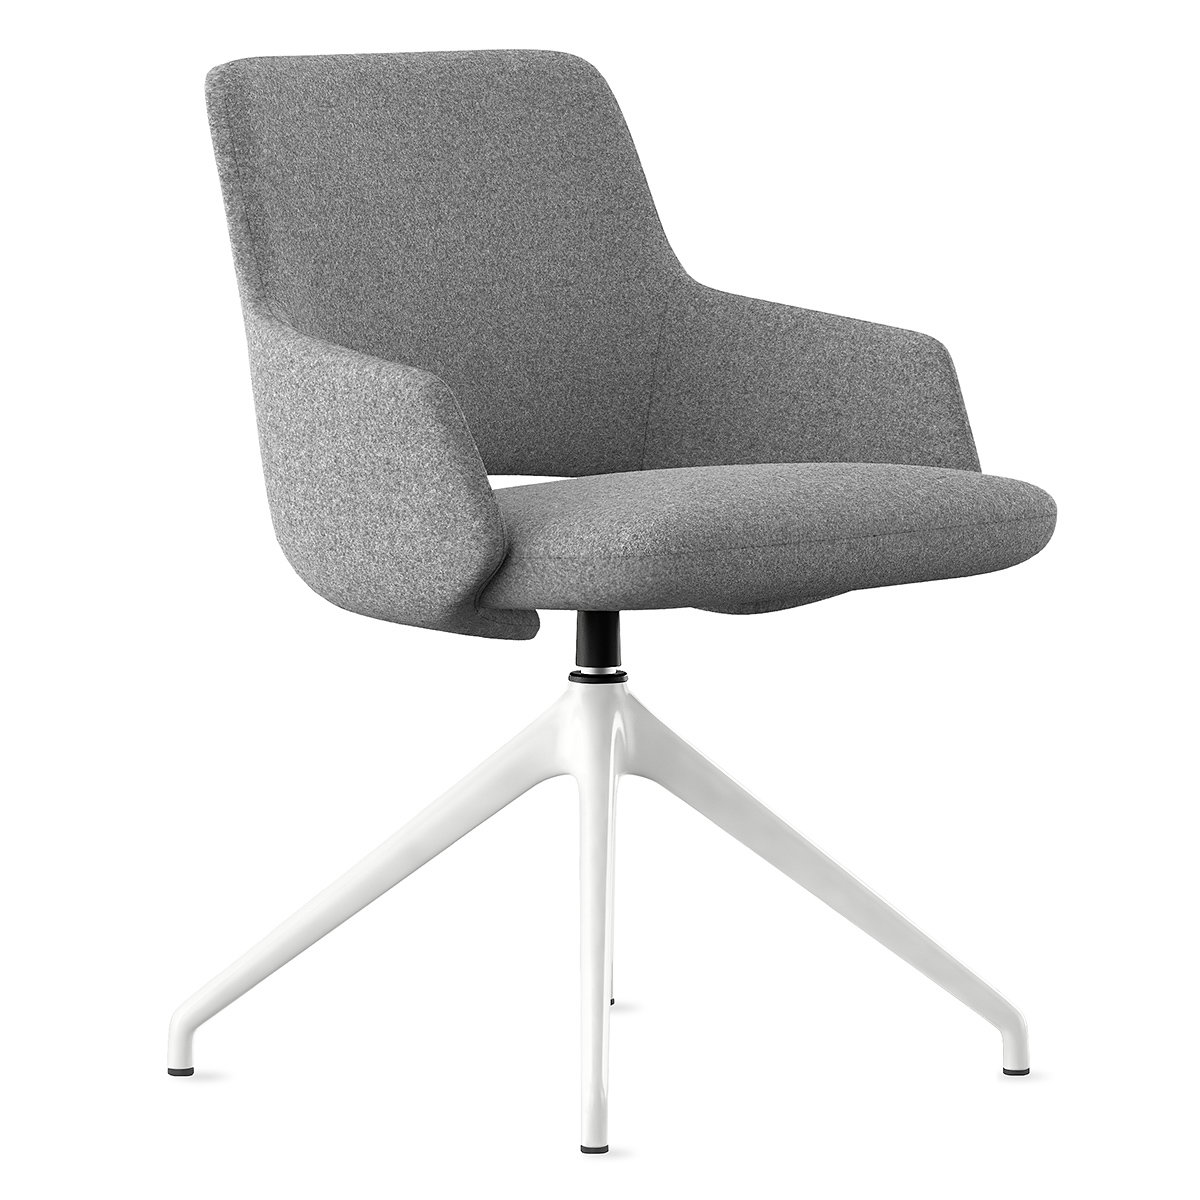 Studio TK Debuts New Jima Seating Collection